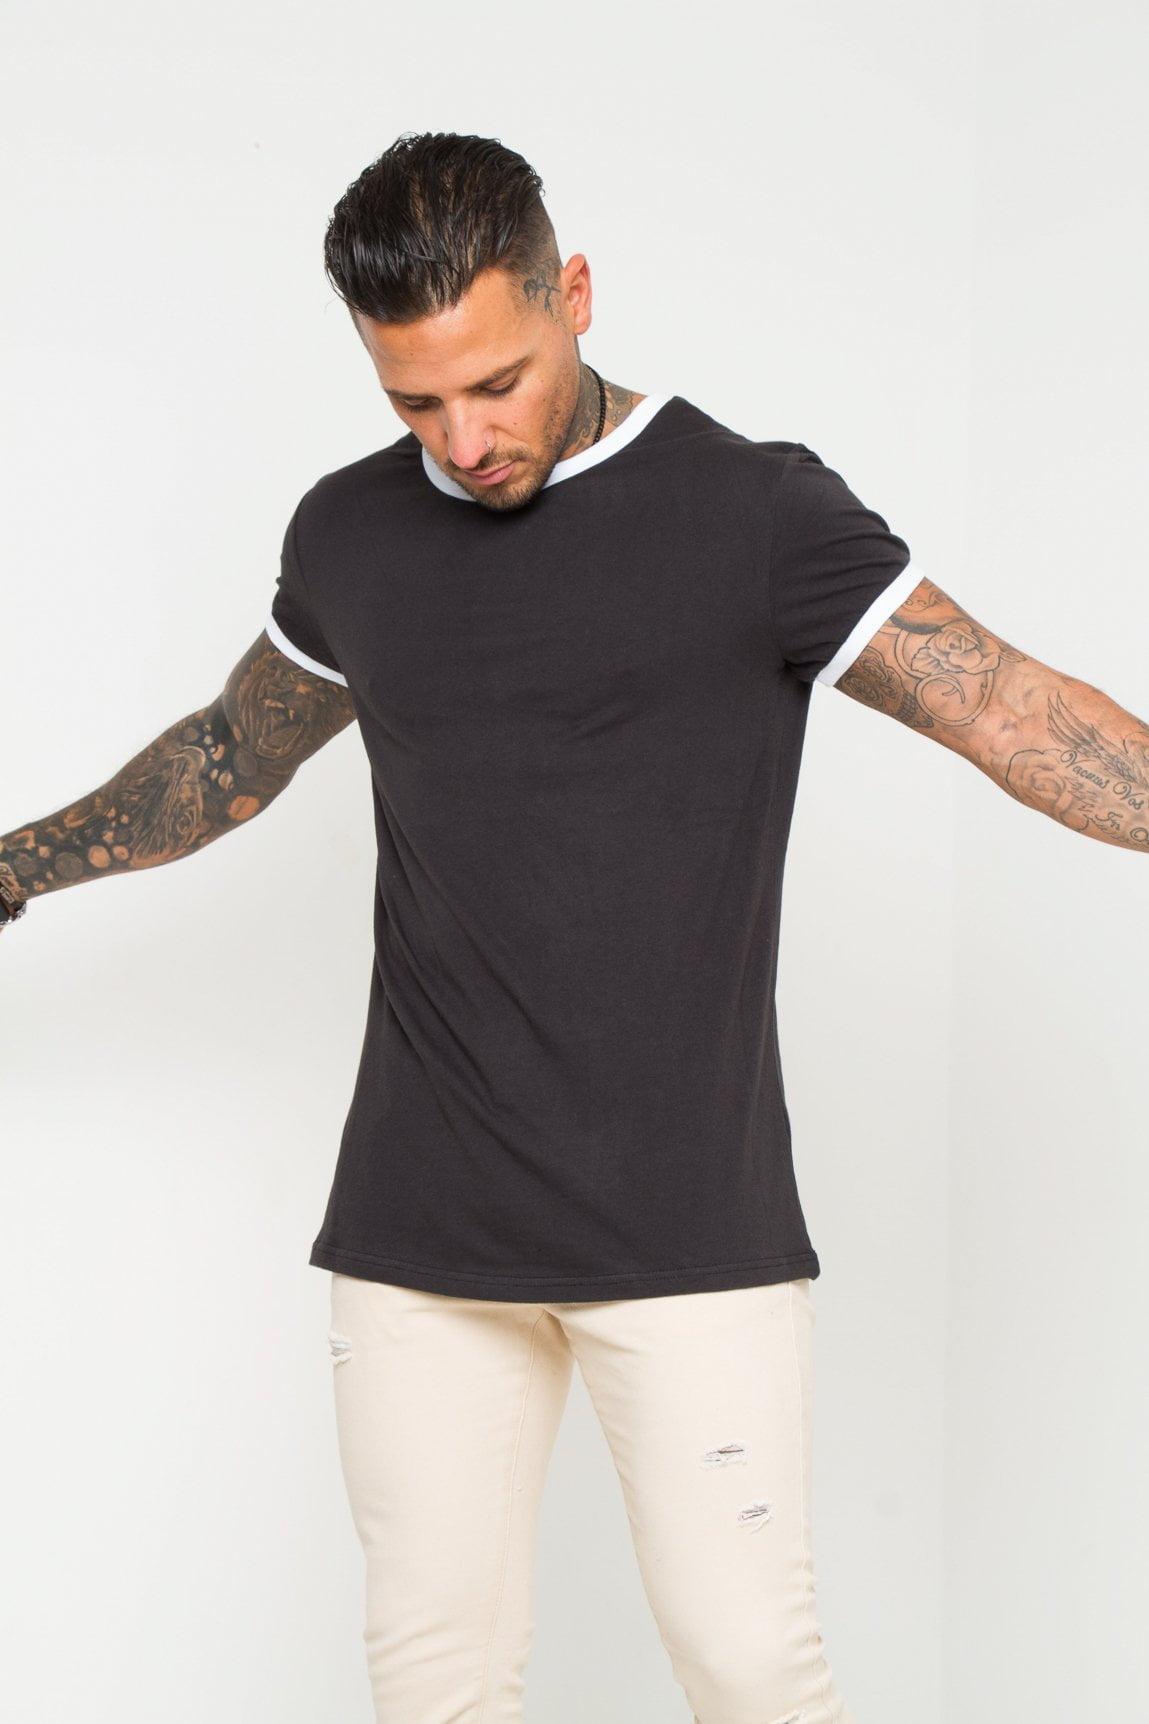 Frisco Ringer Tee- Black with white ribbing